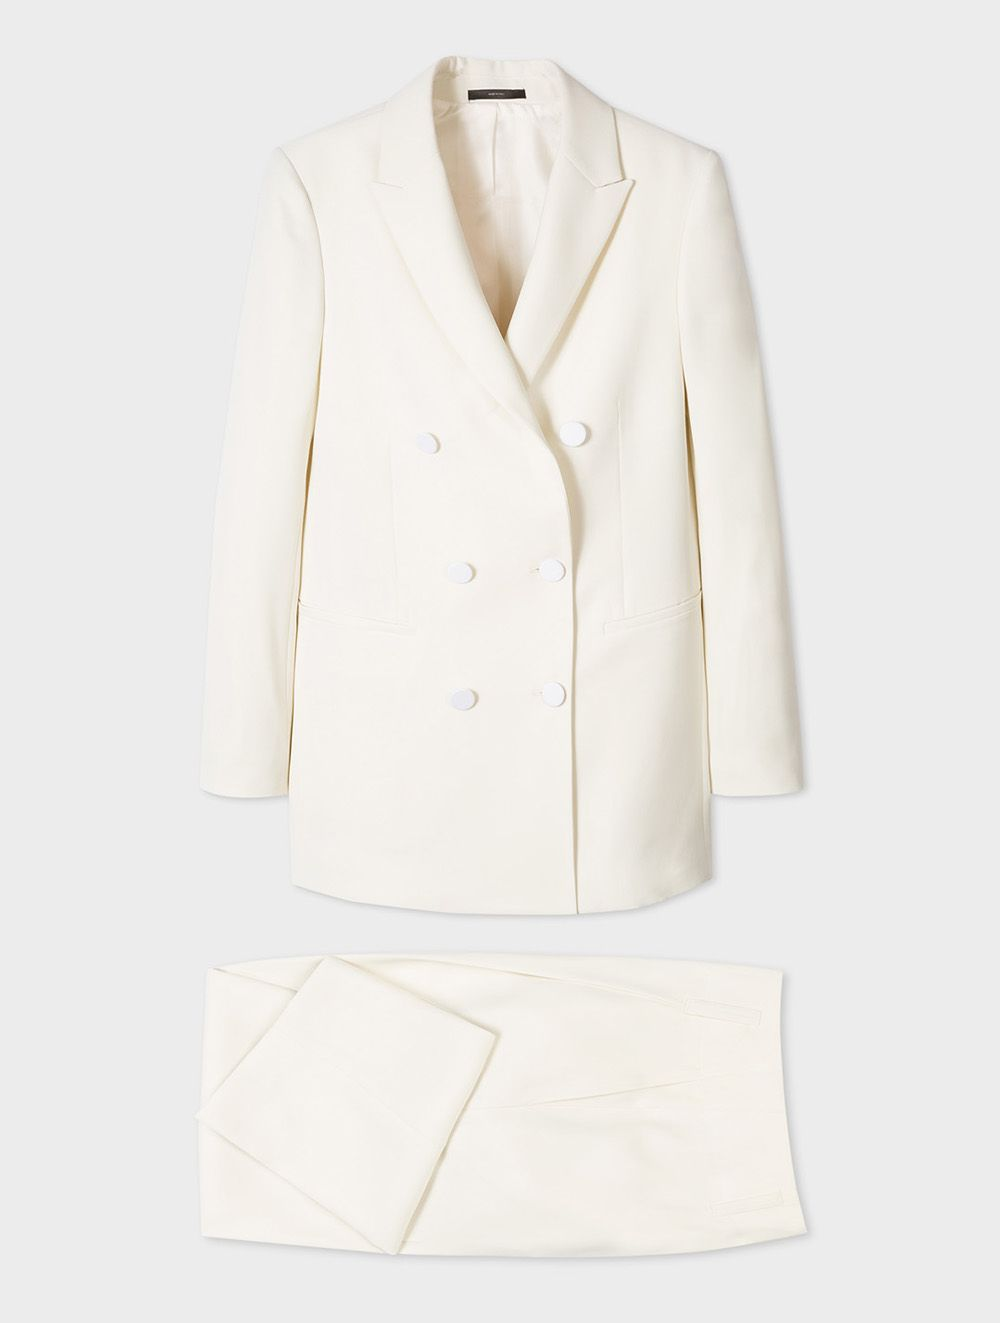 PAUL SMITH WOMEN'S IVORY DOUBLE-BREASTED TUXEDO SUIT, £670 (Dhs3,279)